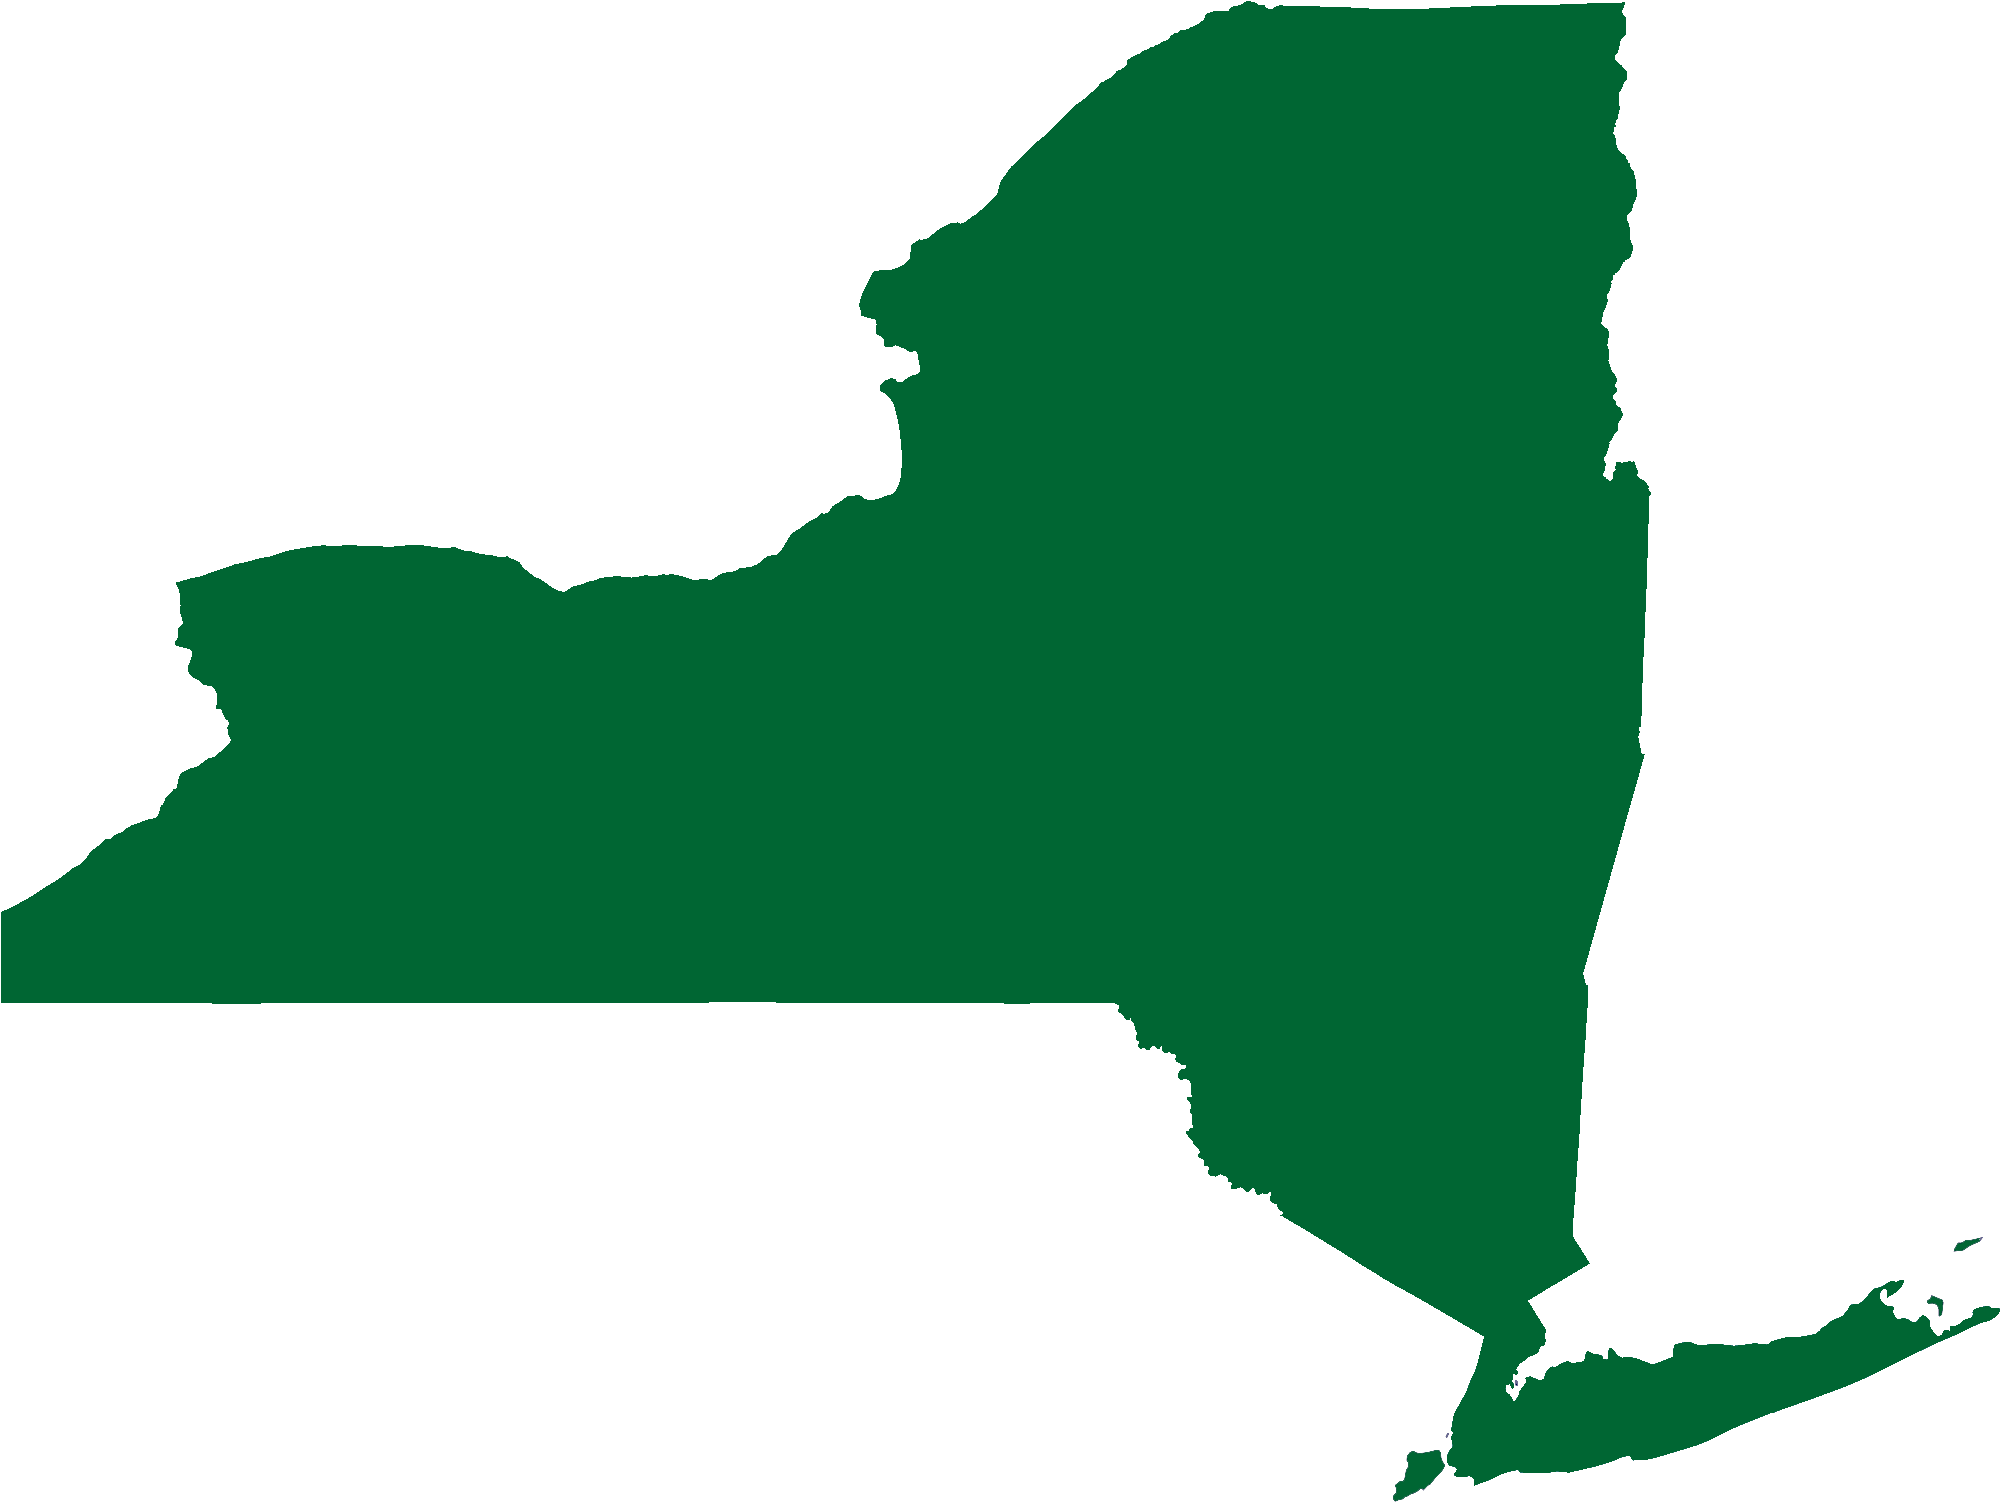 New york png state. Mental health resources in